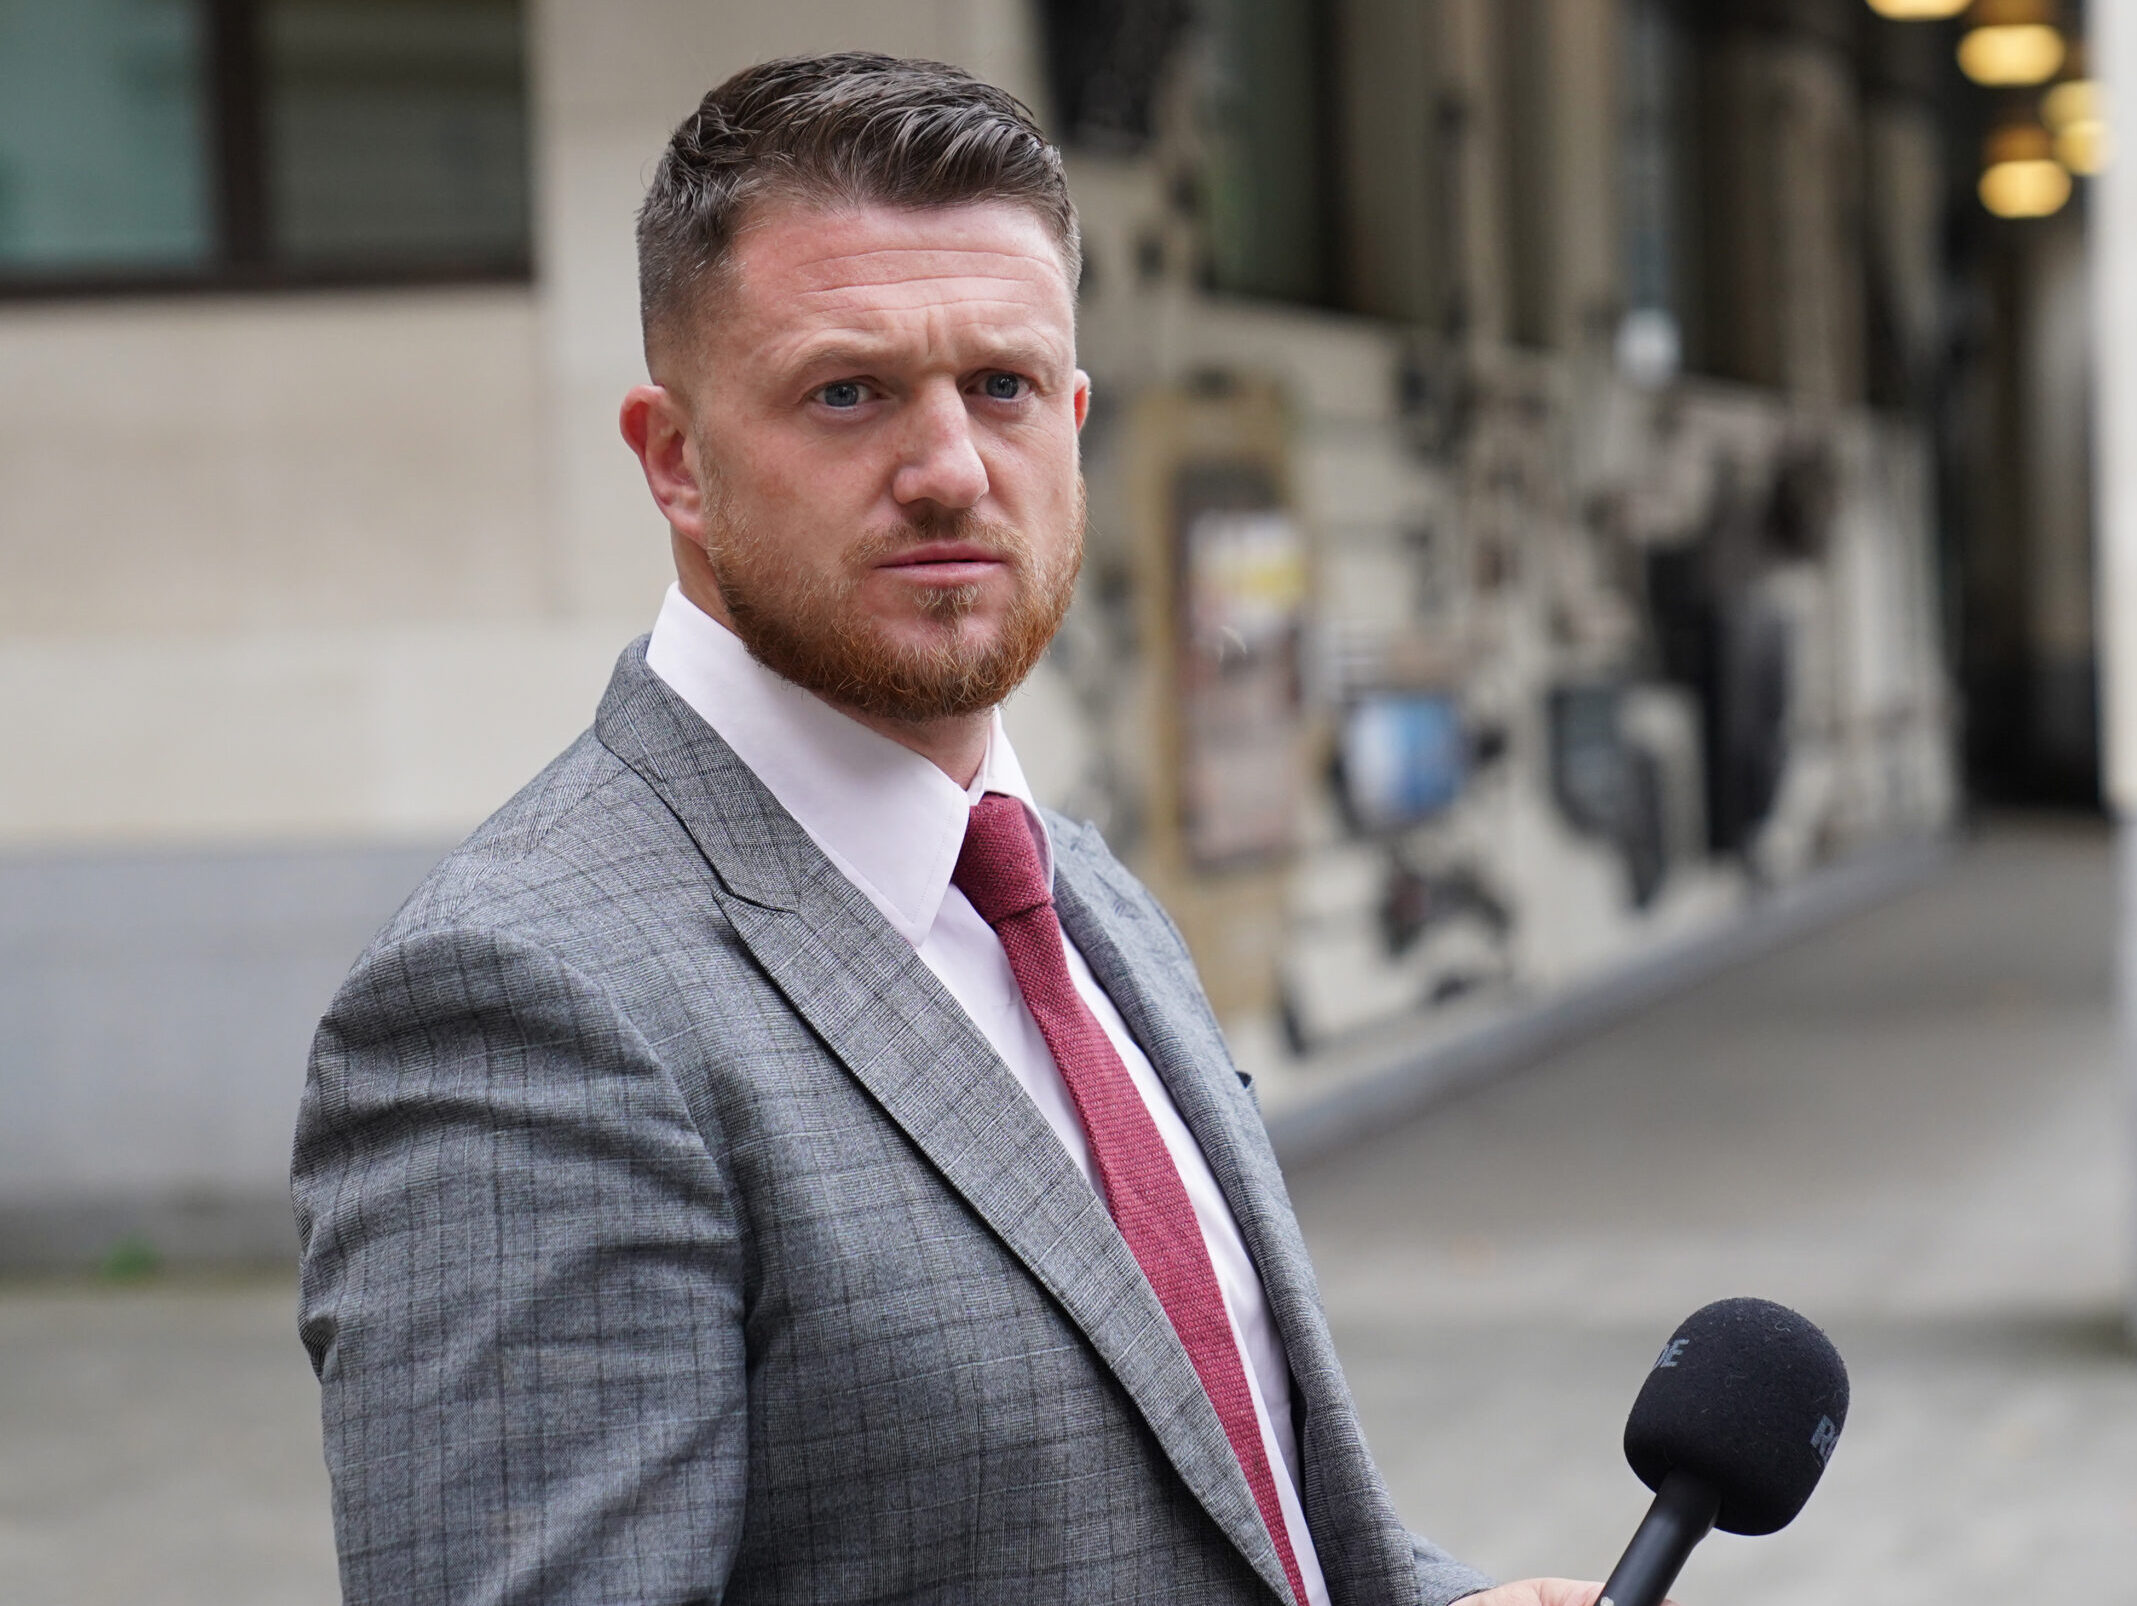 Tommy Robinsonaccused of stalking Independent home affairs correspondent Lizzie Dearden